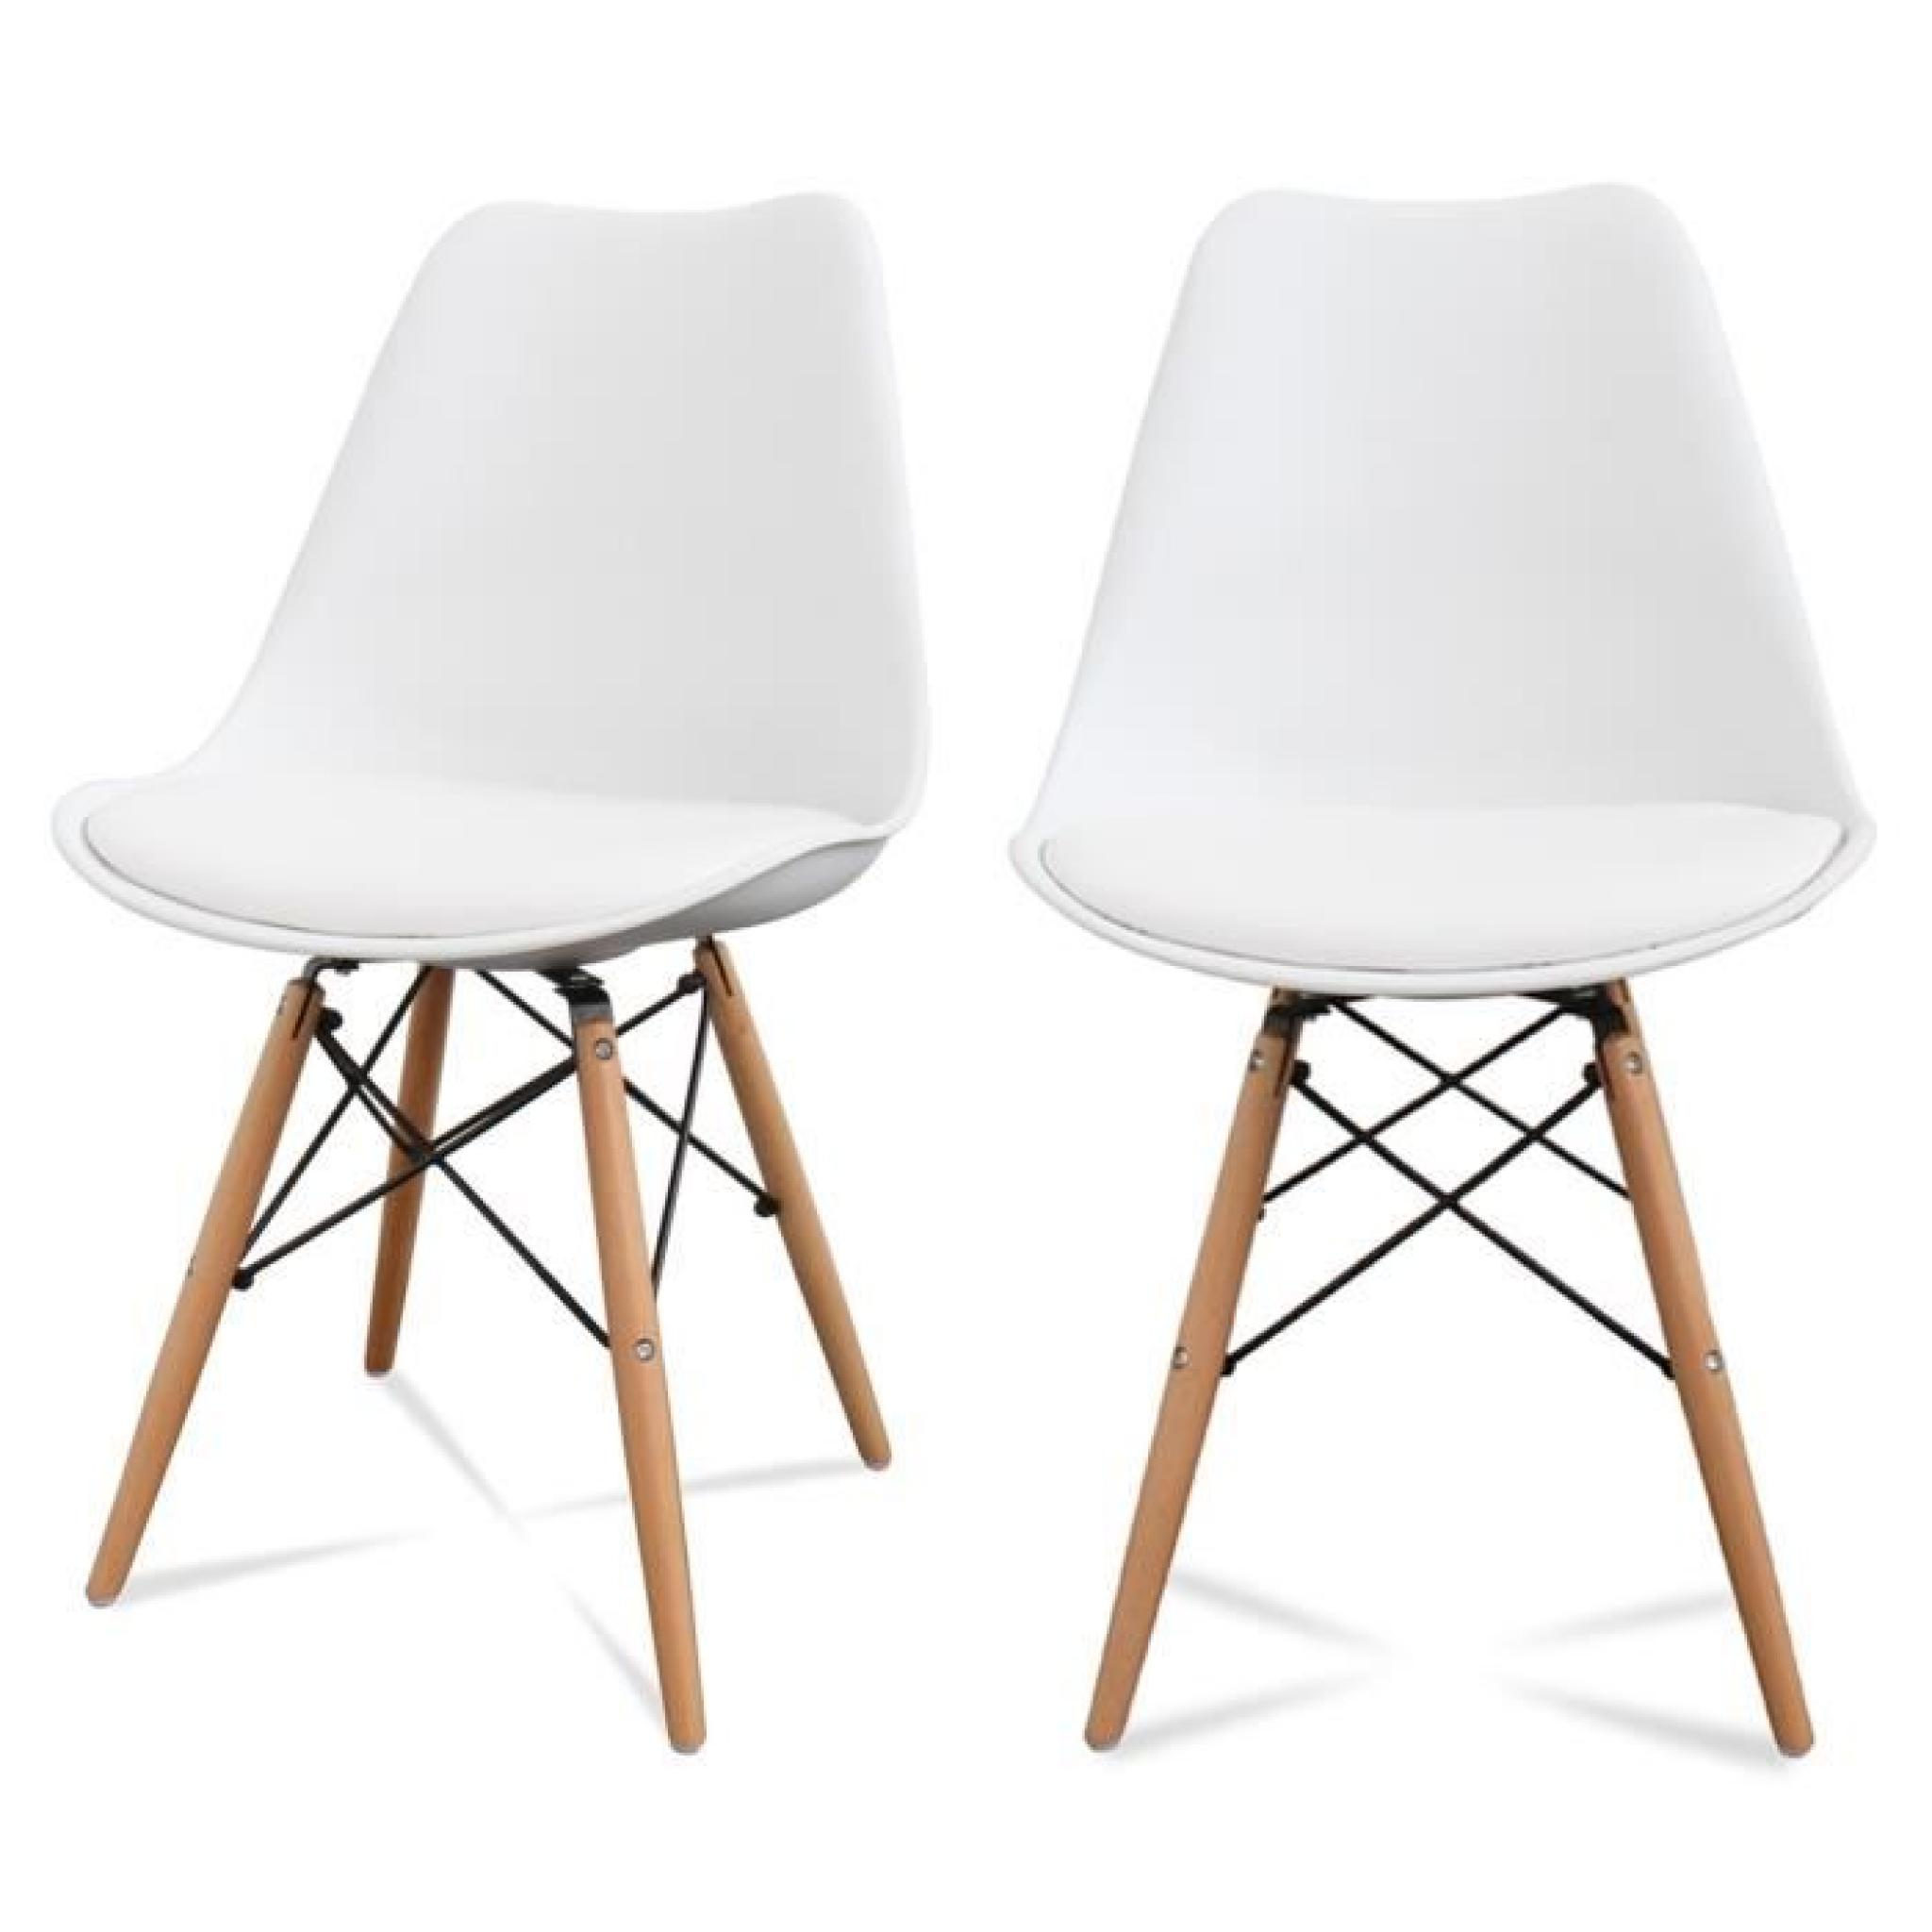 Lot de 2 chaises design ormond dsw couleur blanc achat for Chaise design dsw blanche blanc